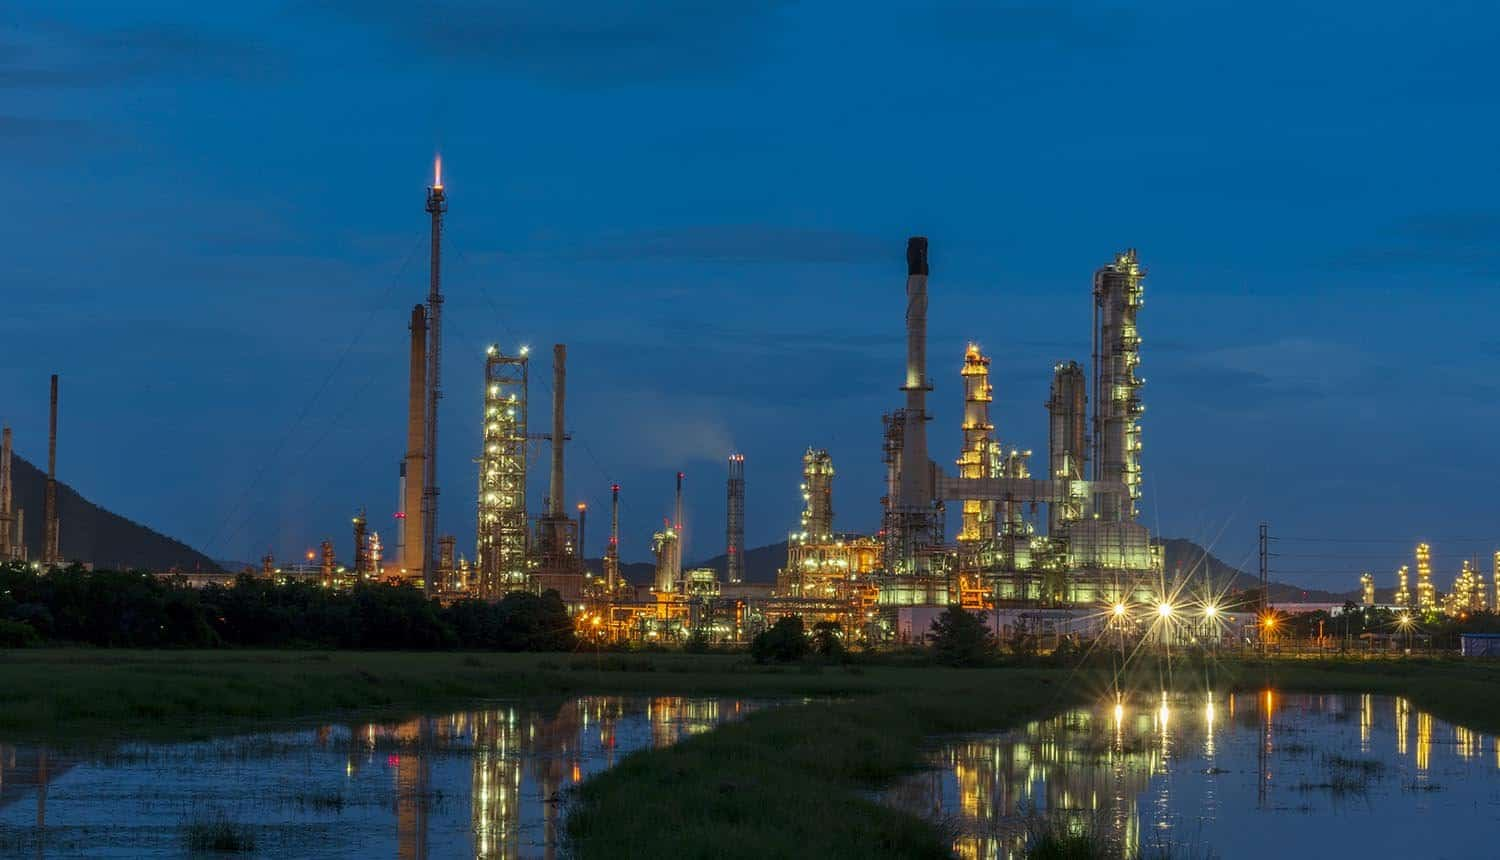 Oil refinery gas petrol plant industry with crude tank, gasoline supply and chemical factory showing cyber-physical security for critical infrastructure and healthcare